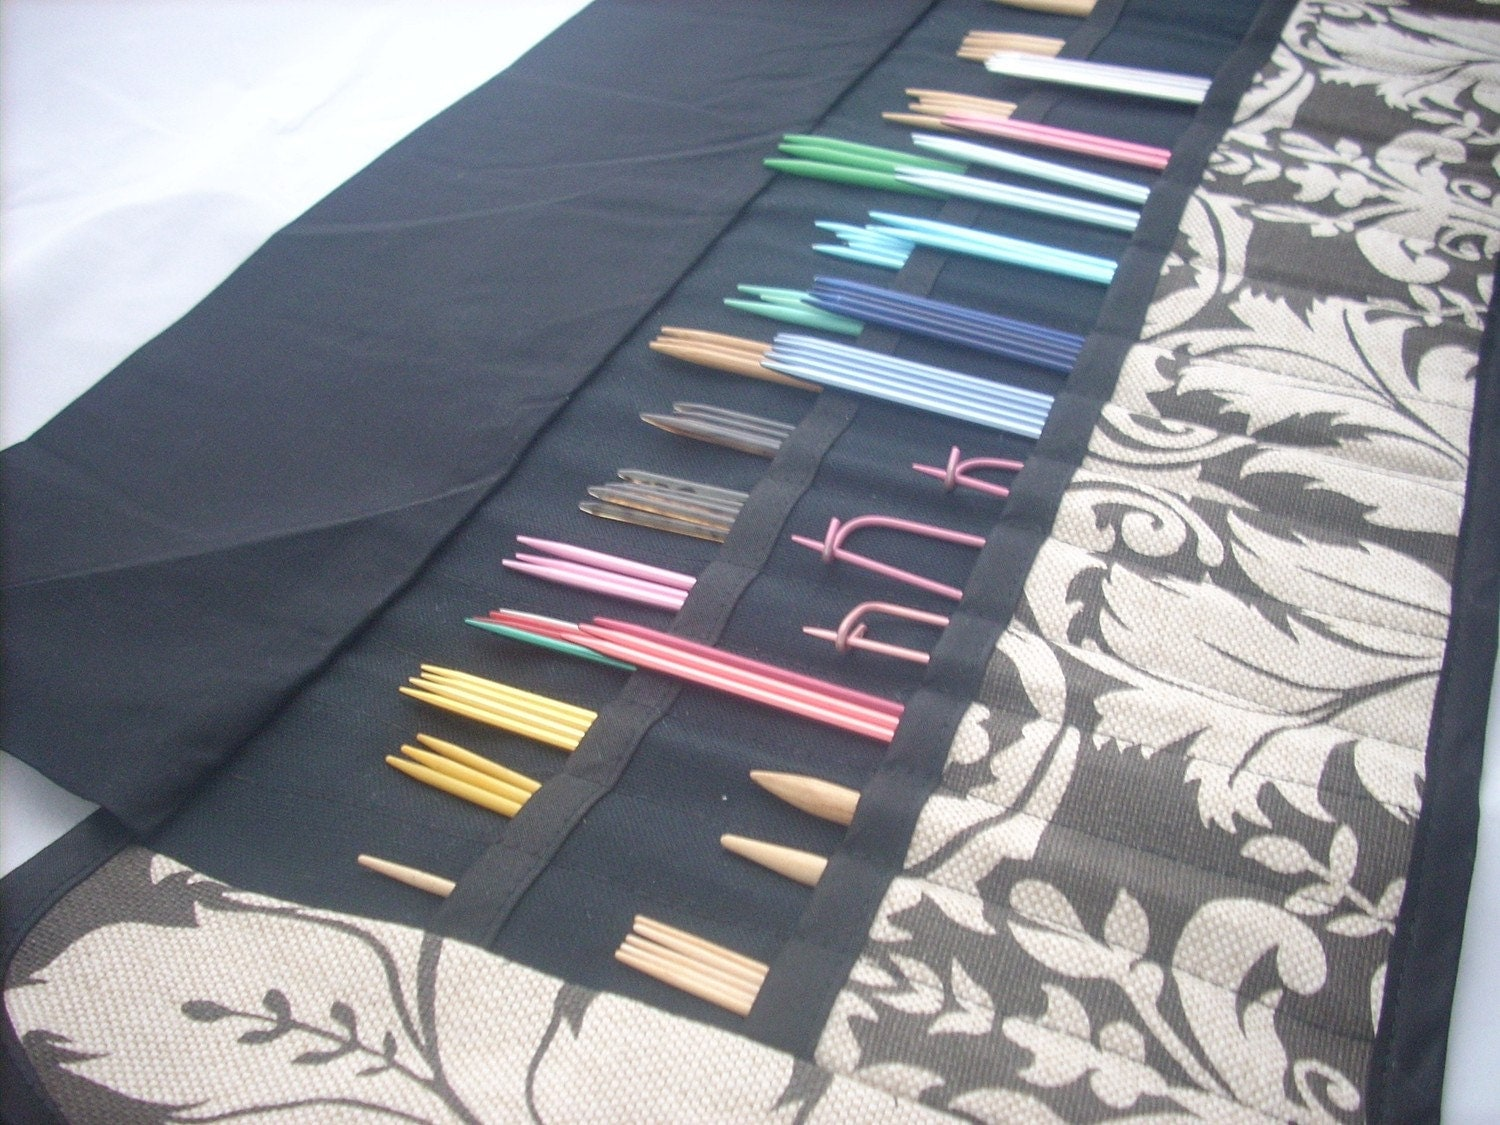 Double Point Needle Case holds 32 sets of dpns